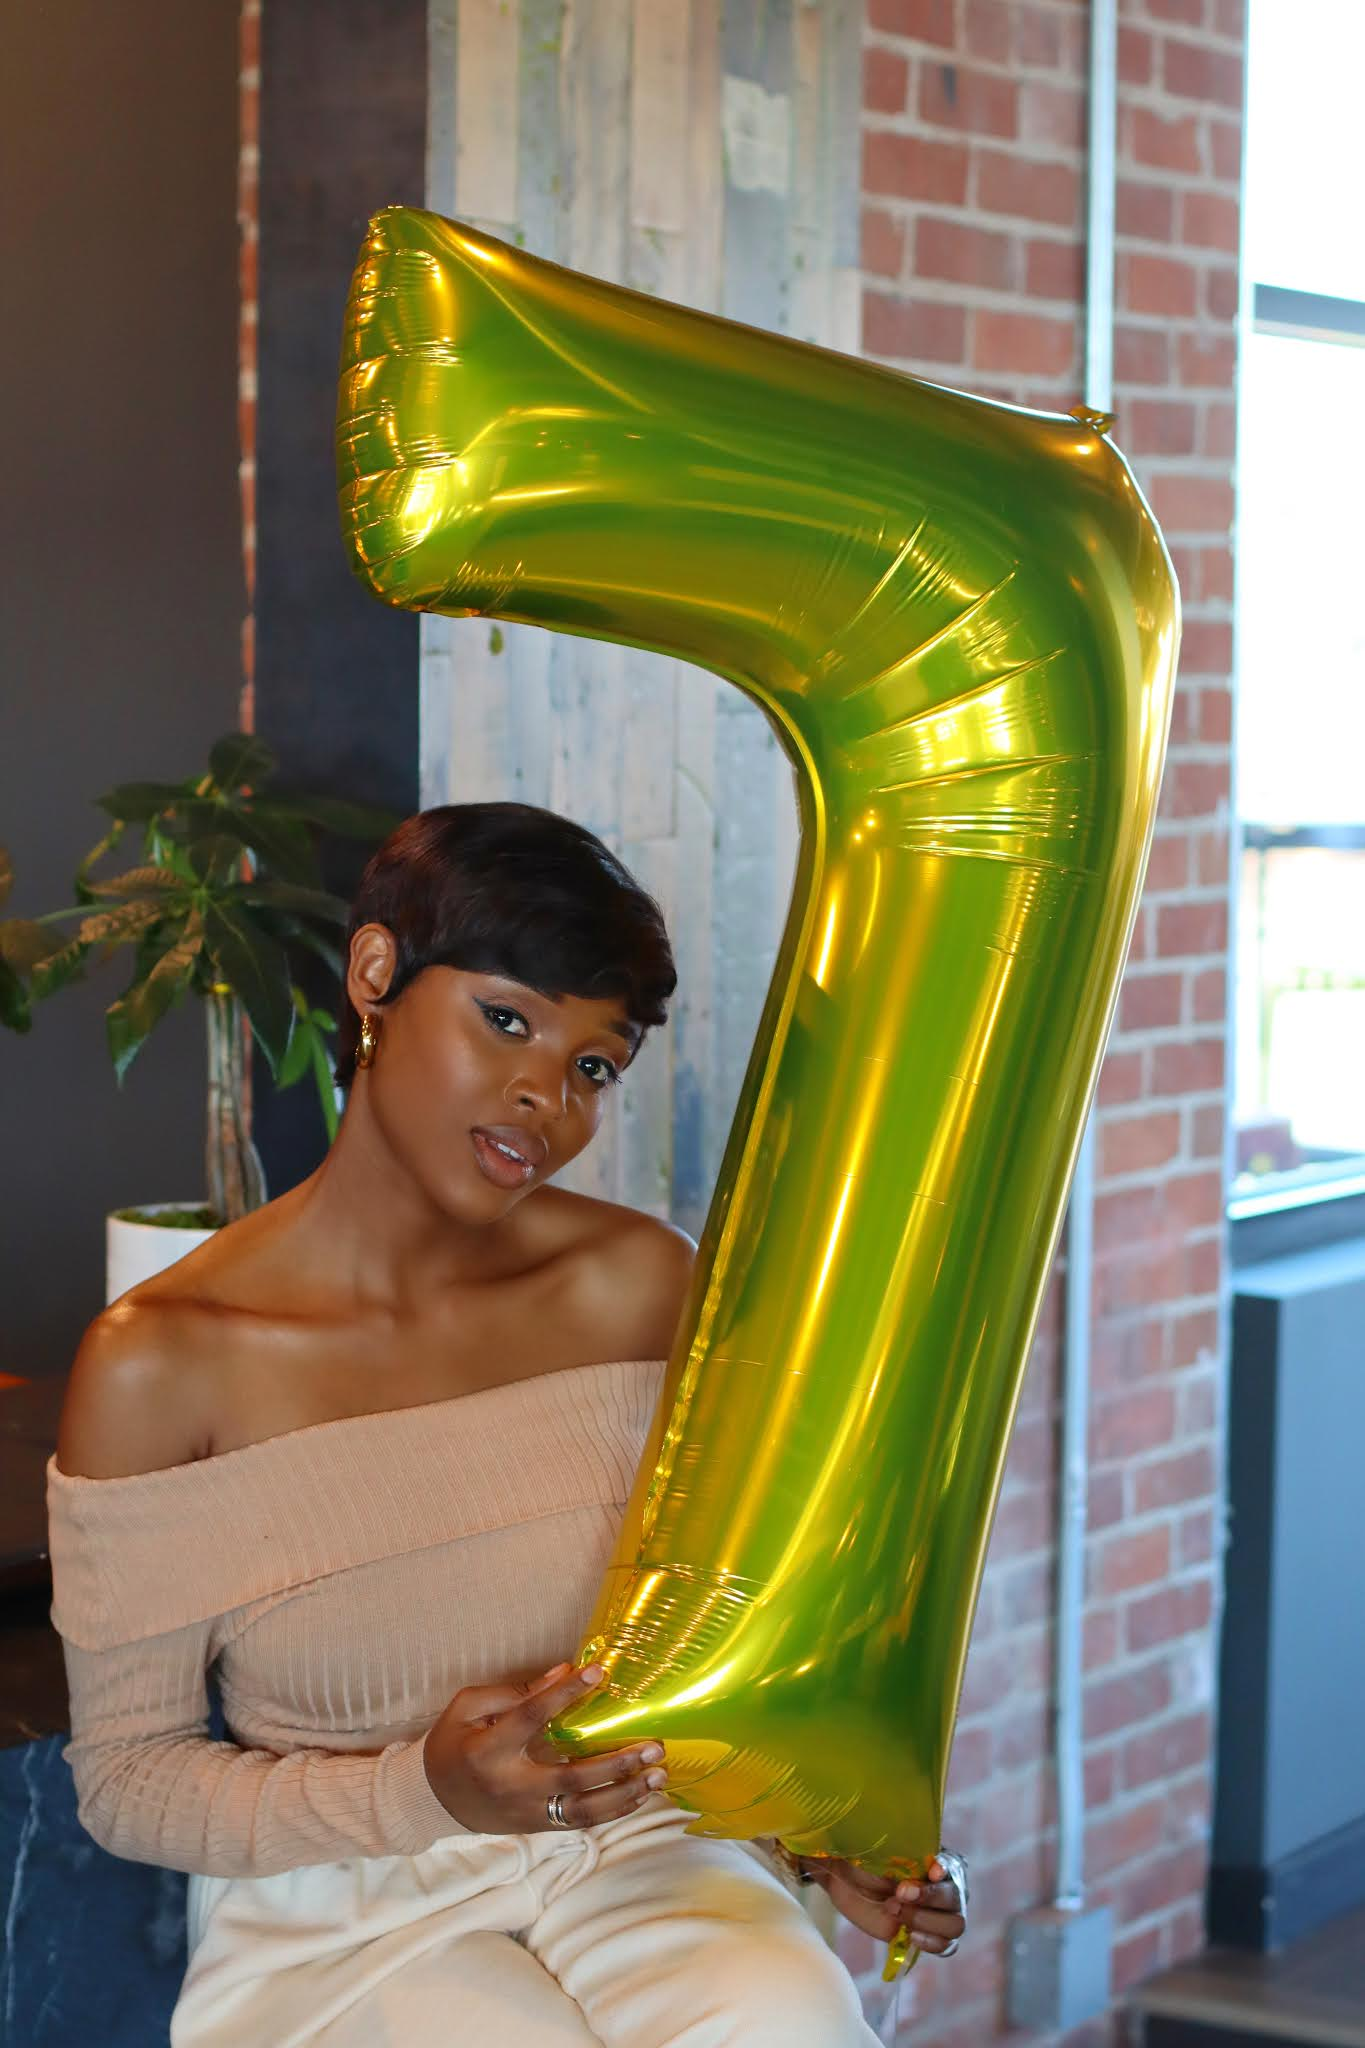 Seven years of blogging